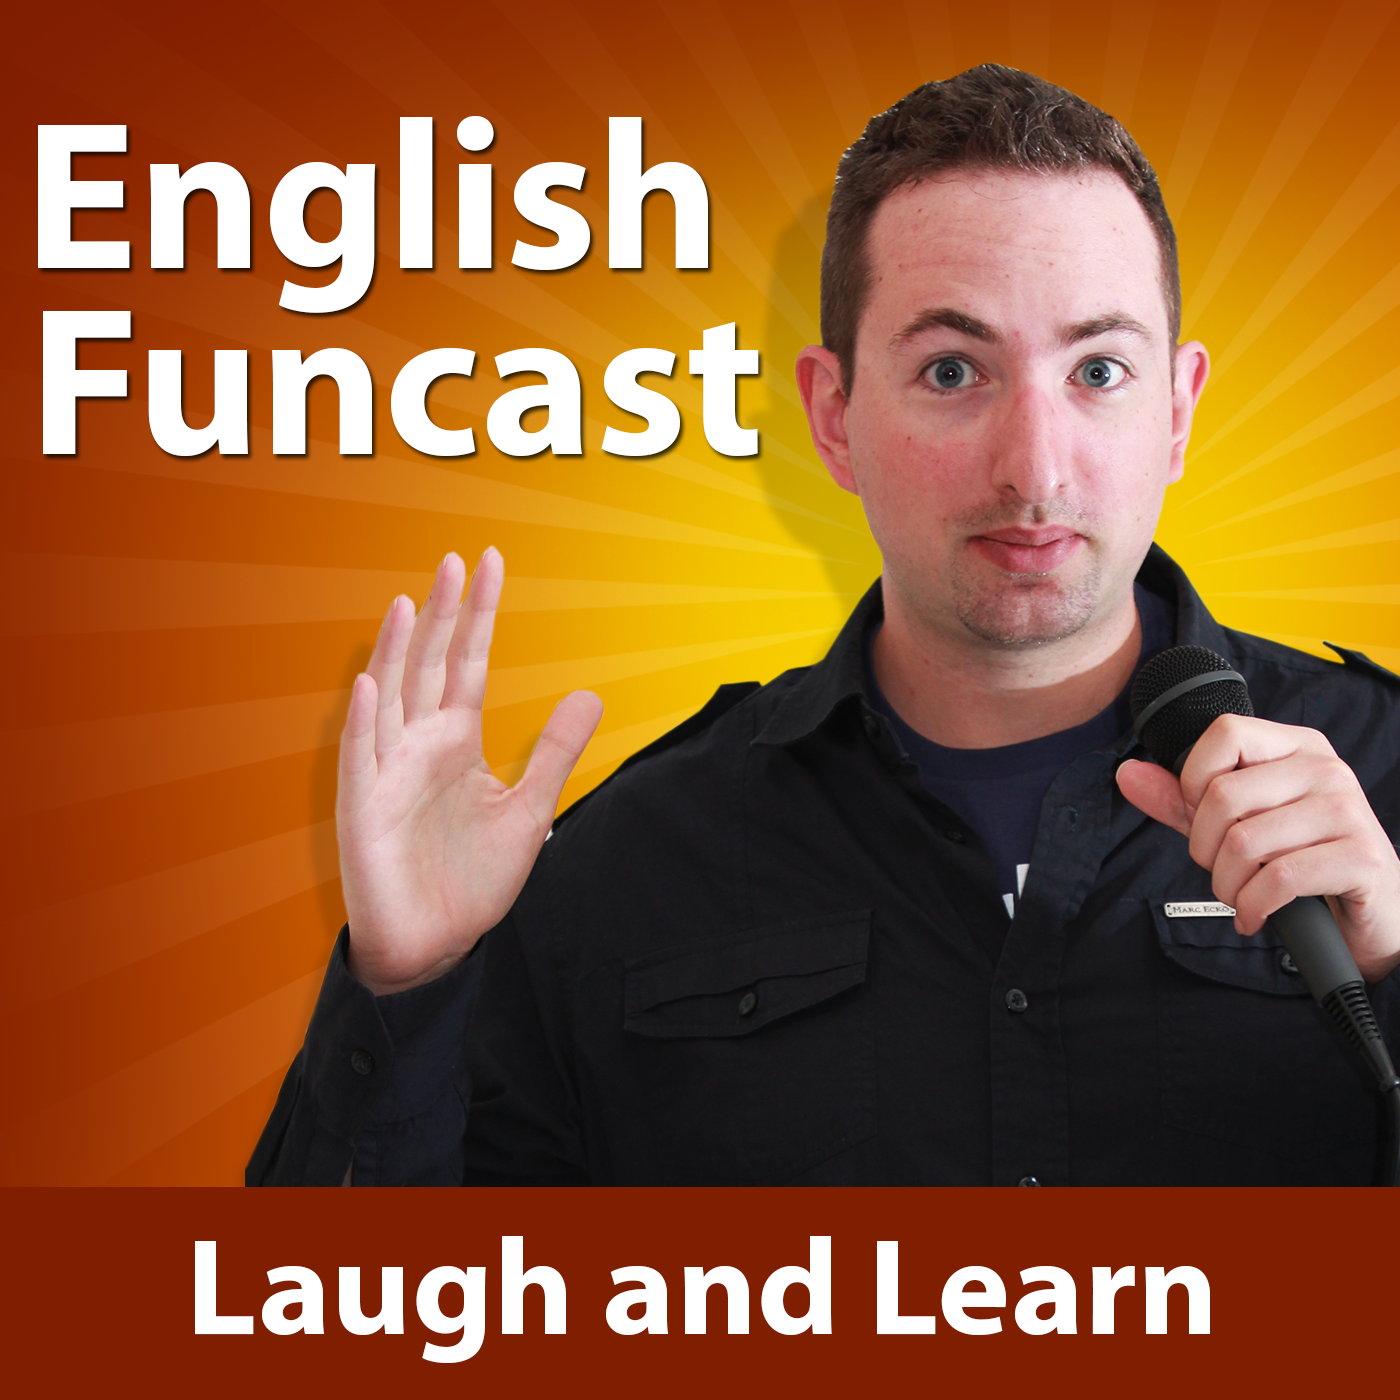 Learn English Funcast #142 - Star Wars feuds, the angry plumber, and a girls love for chickens